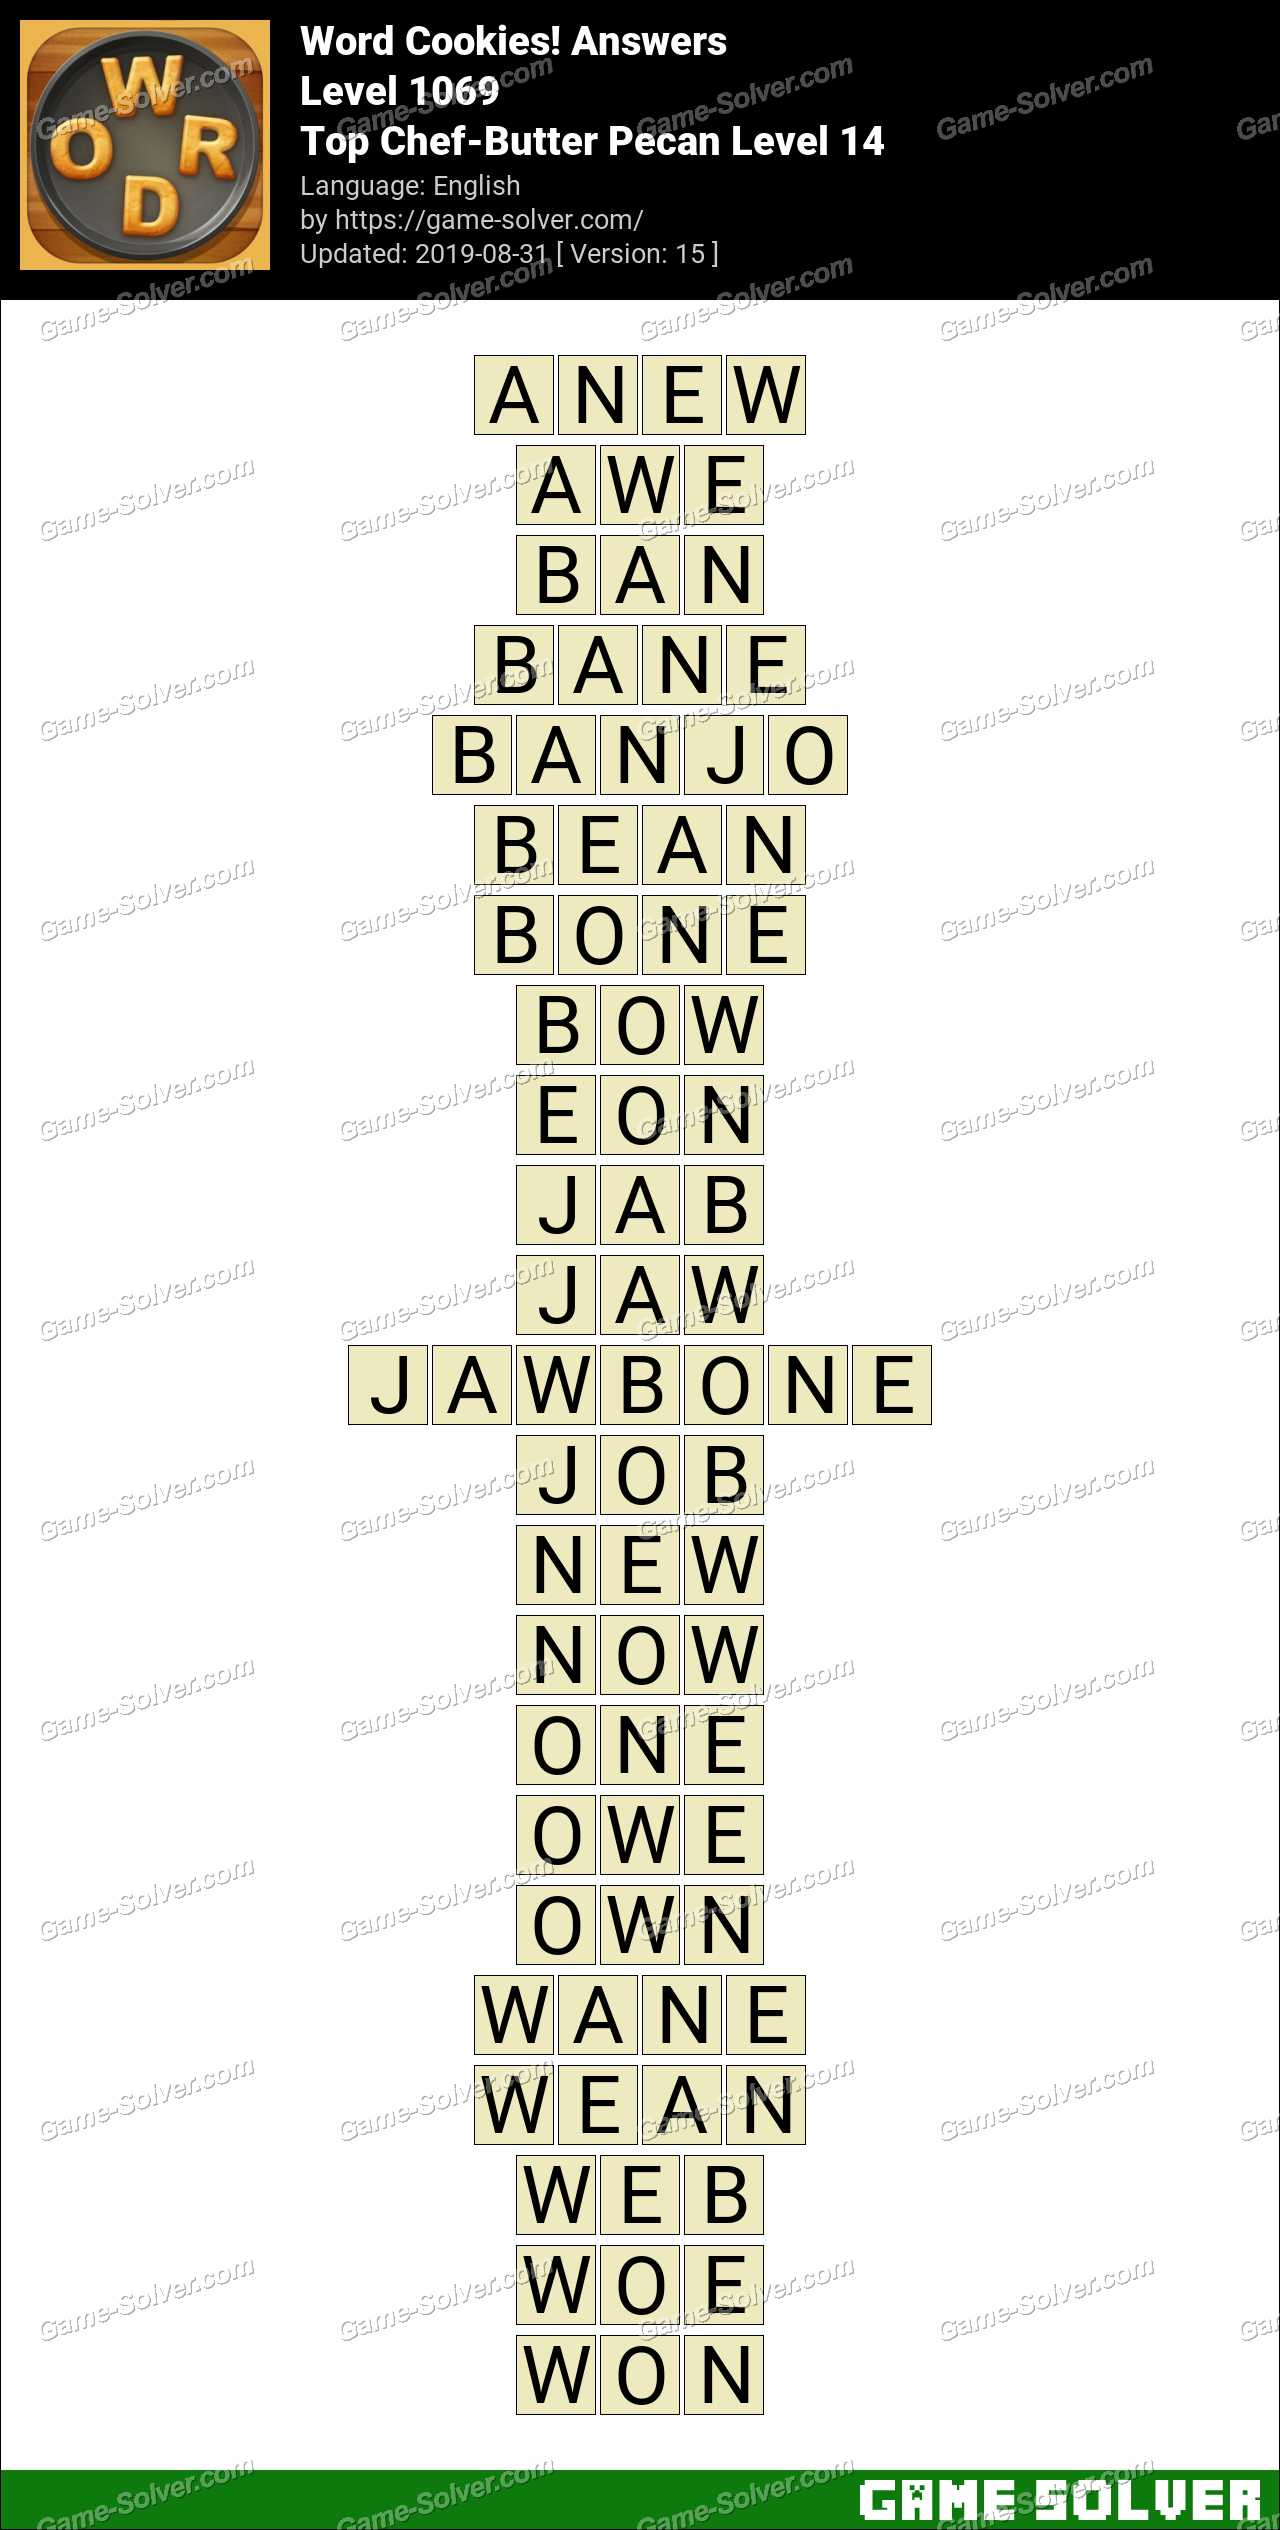 Word Cookies Top Chef-Butter Pecan Level 14 Answers